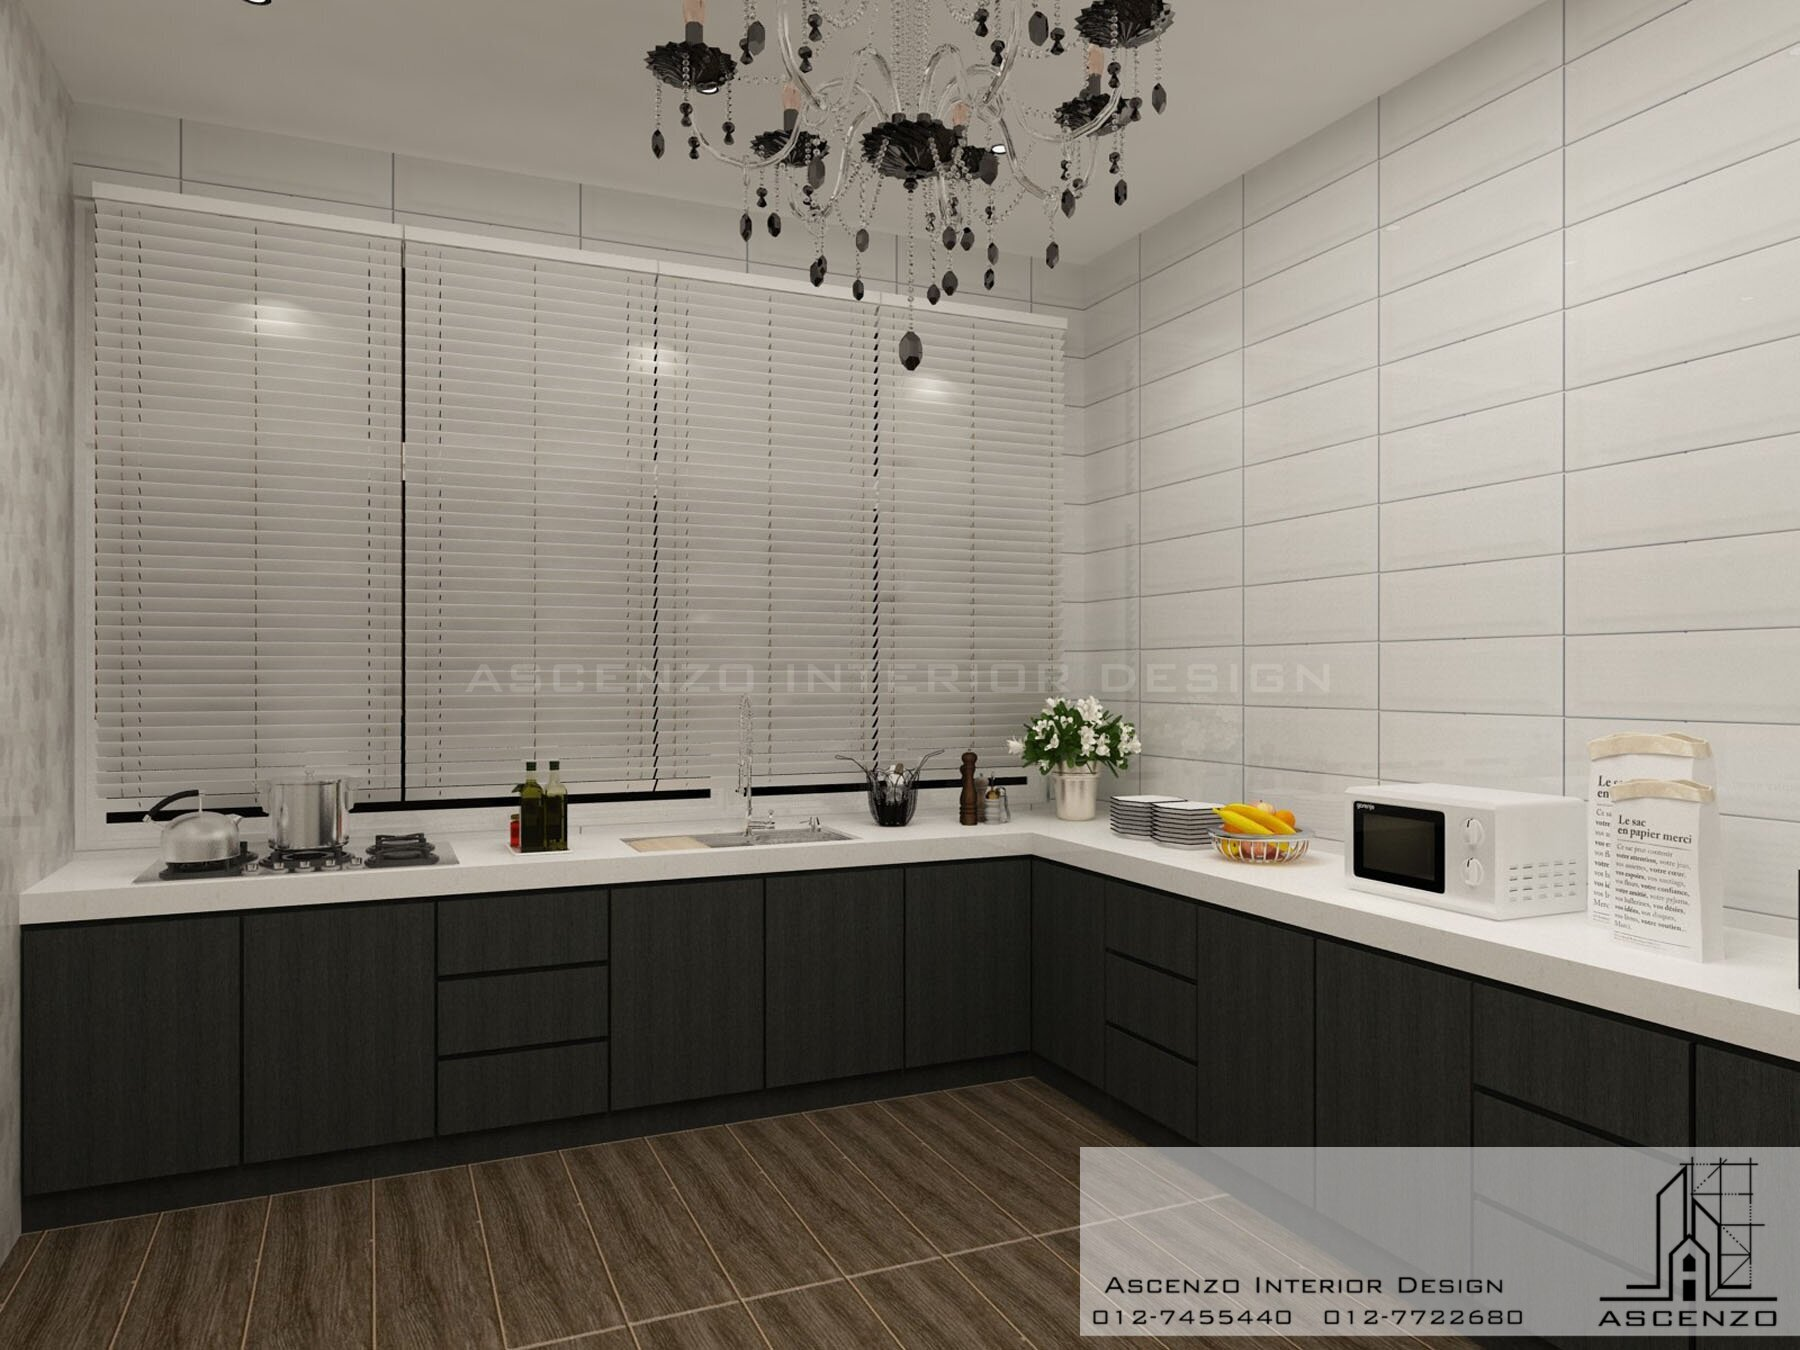 3d kitchen 56